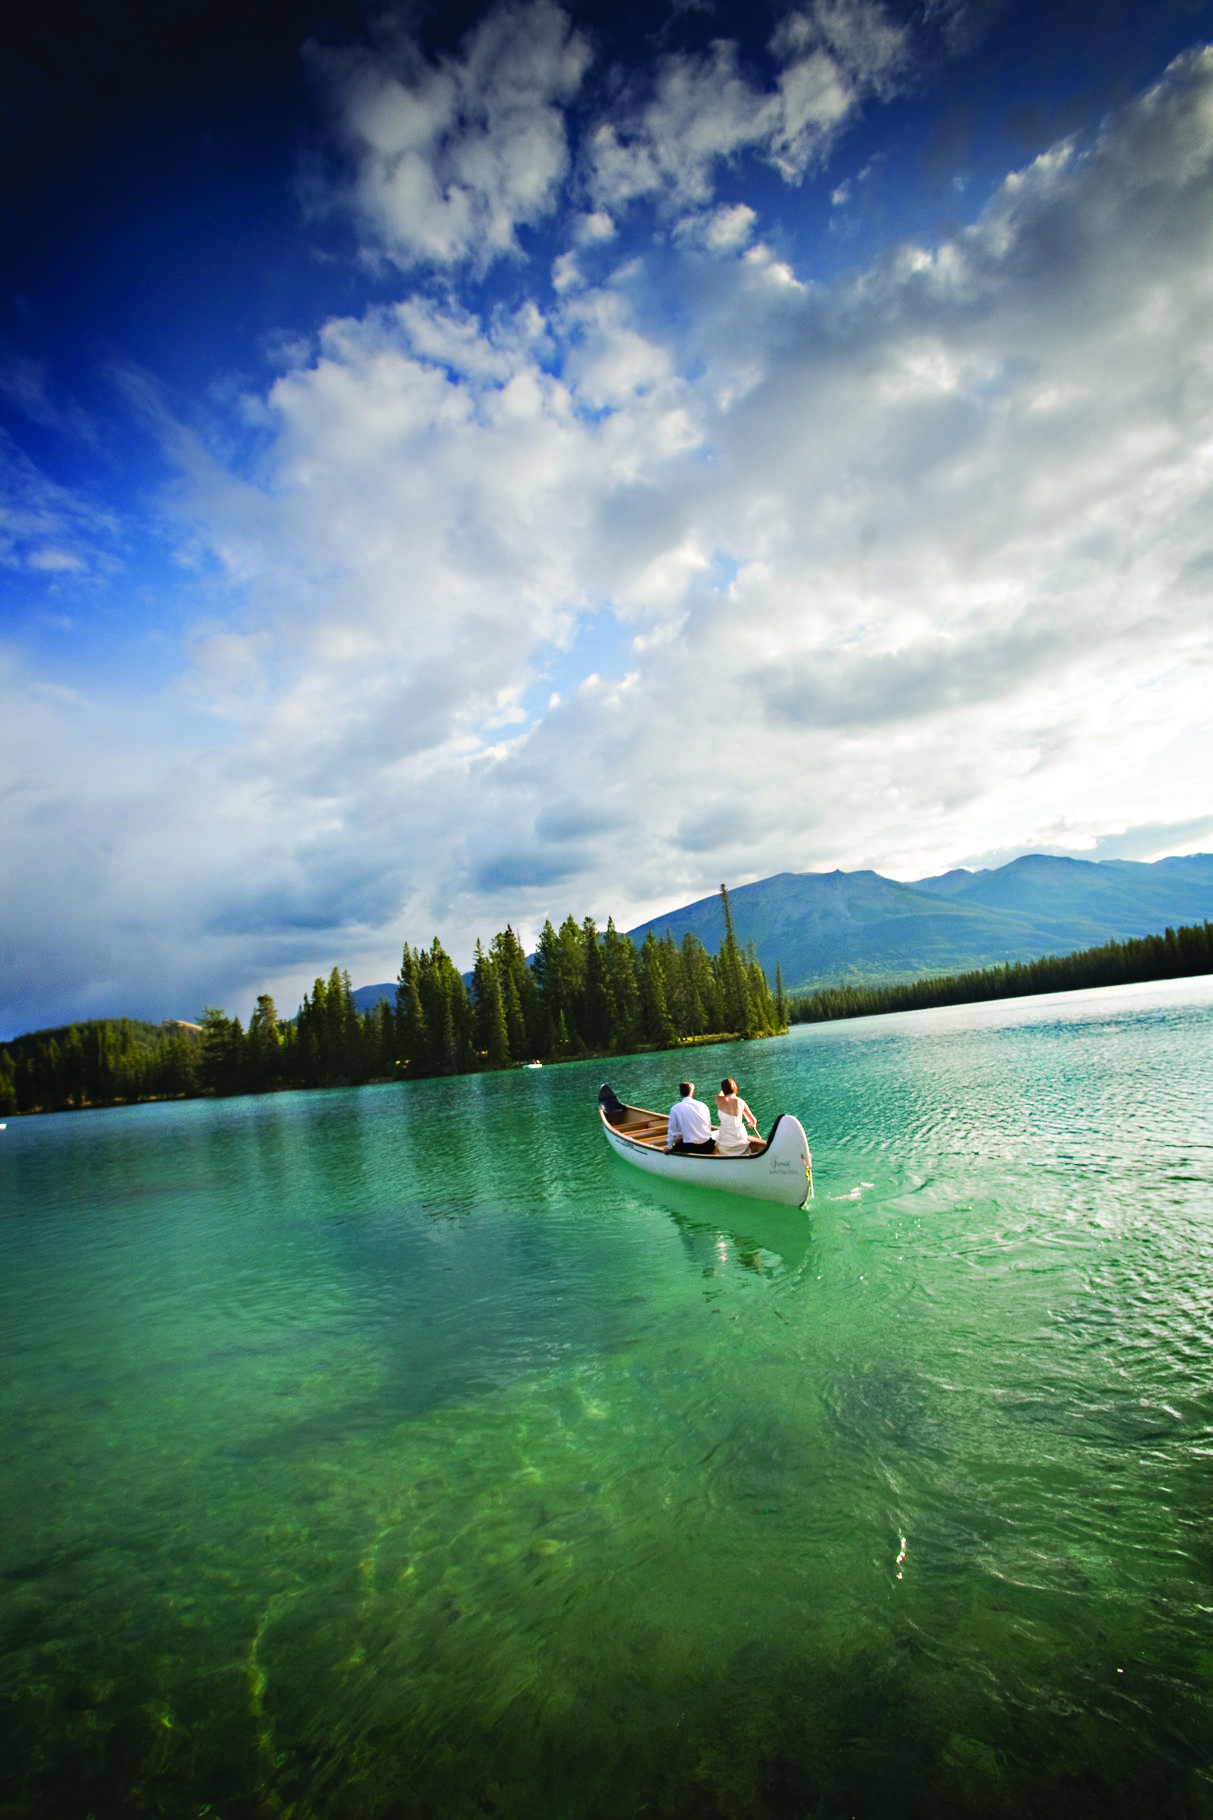 Take our Clipper Boat for a tour around Lac Beauvert in